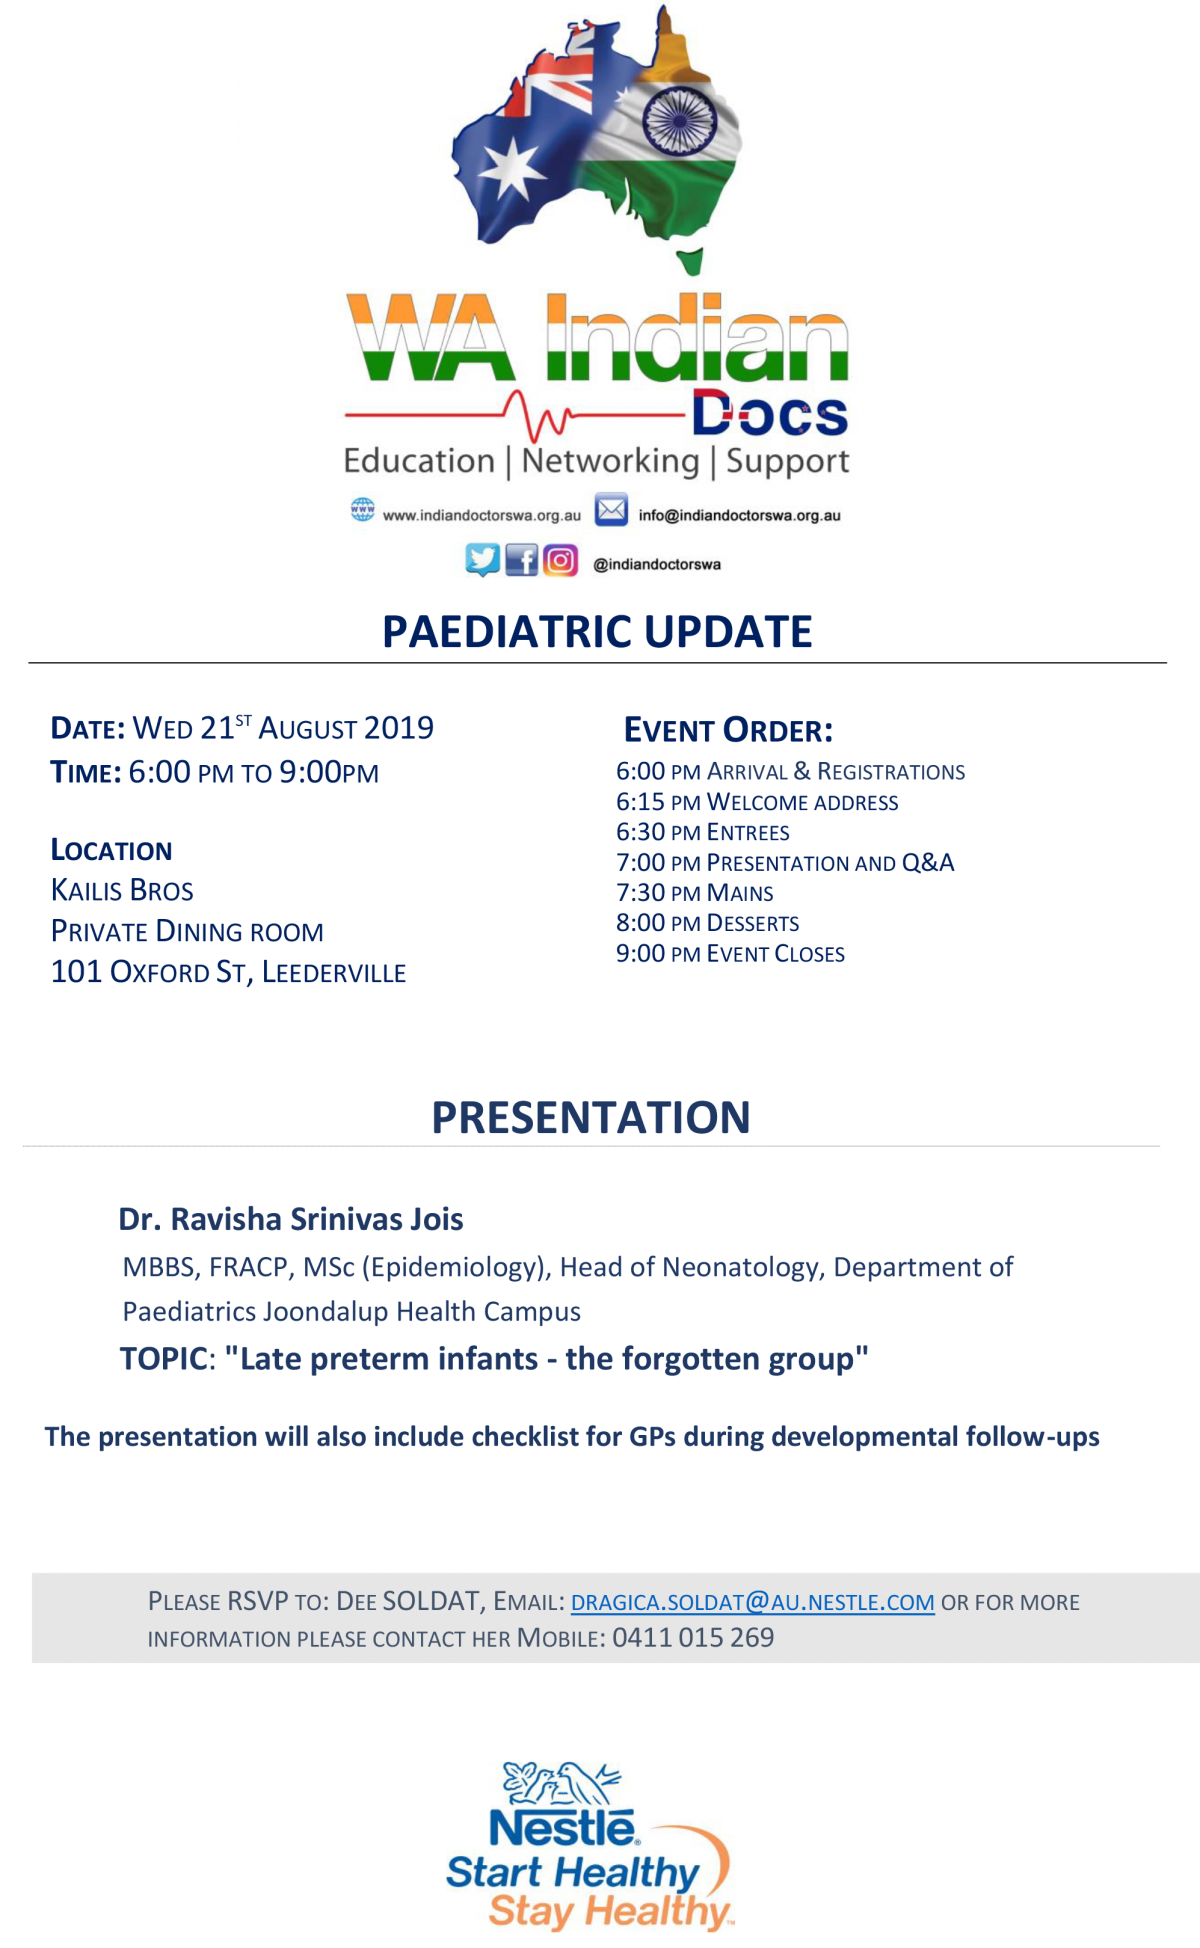 WA_Indian_Docs_Paediatric_Update_21st_Aug_2019-1200x1948.png